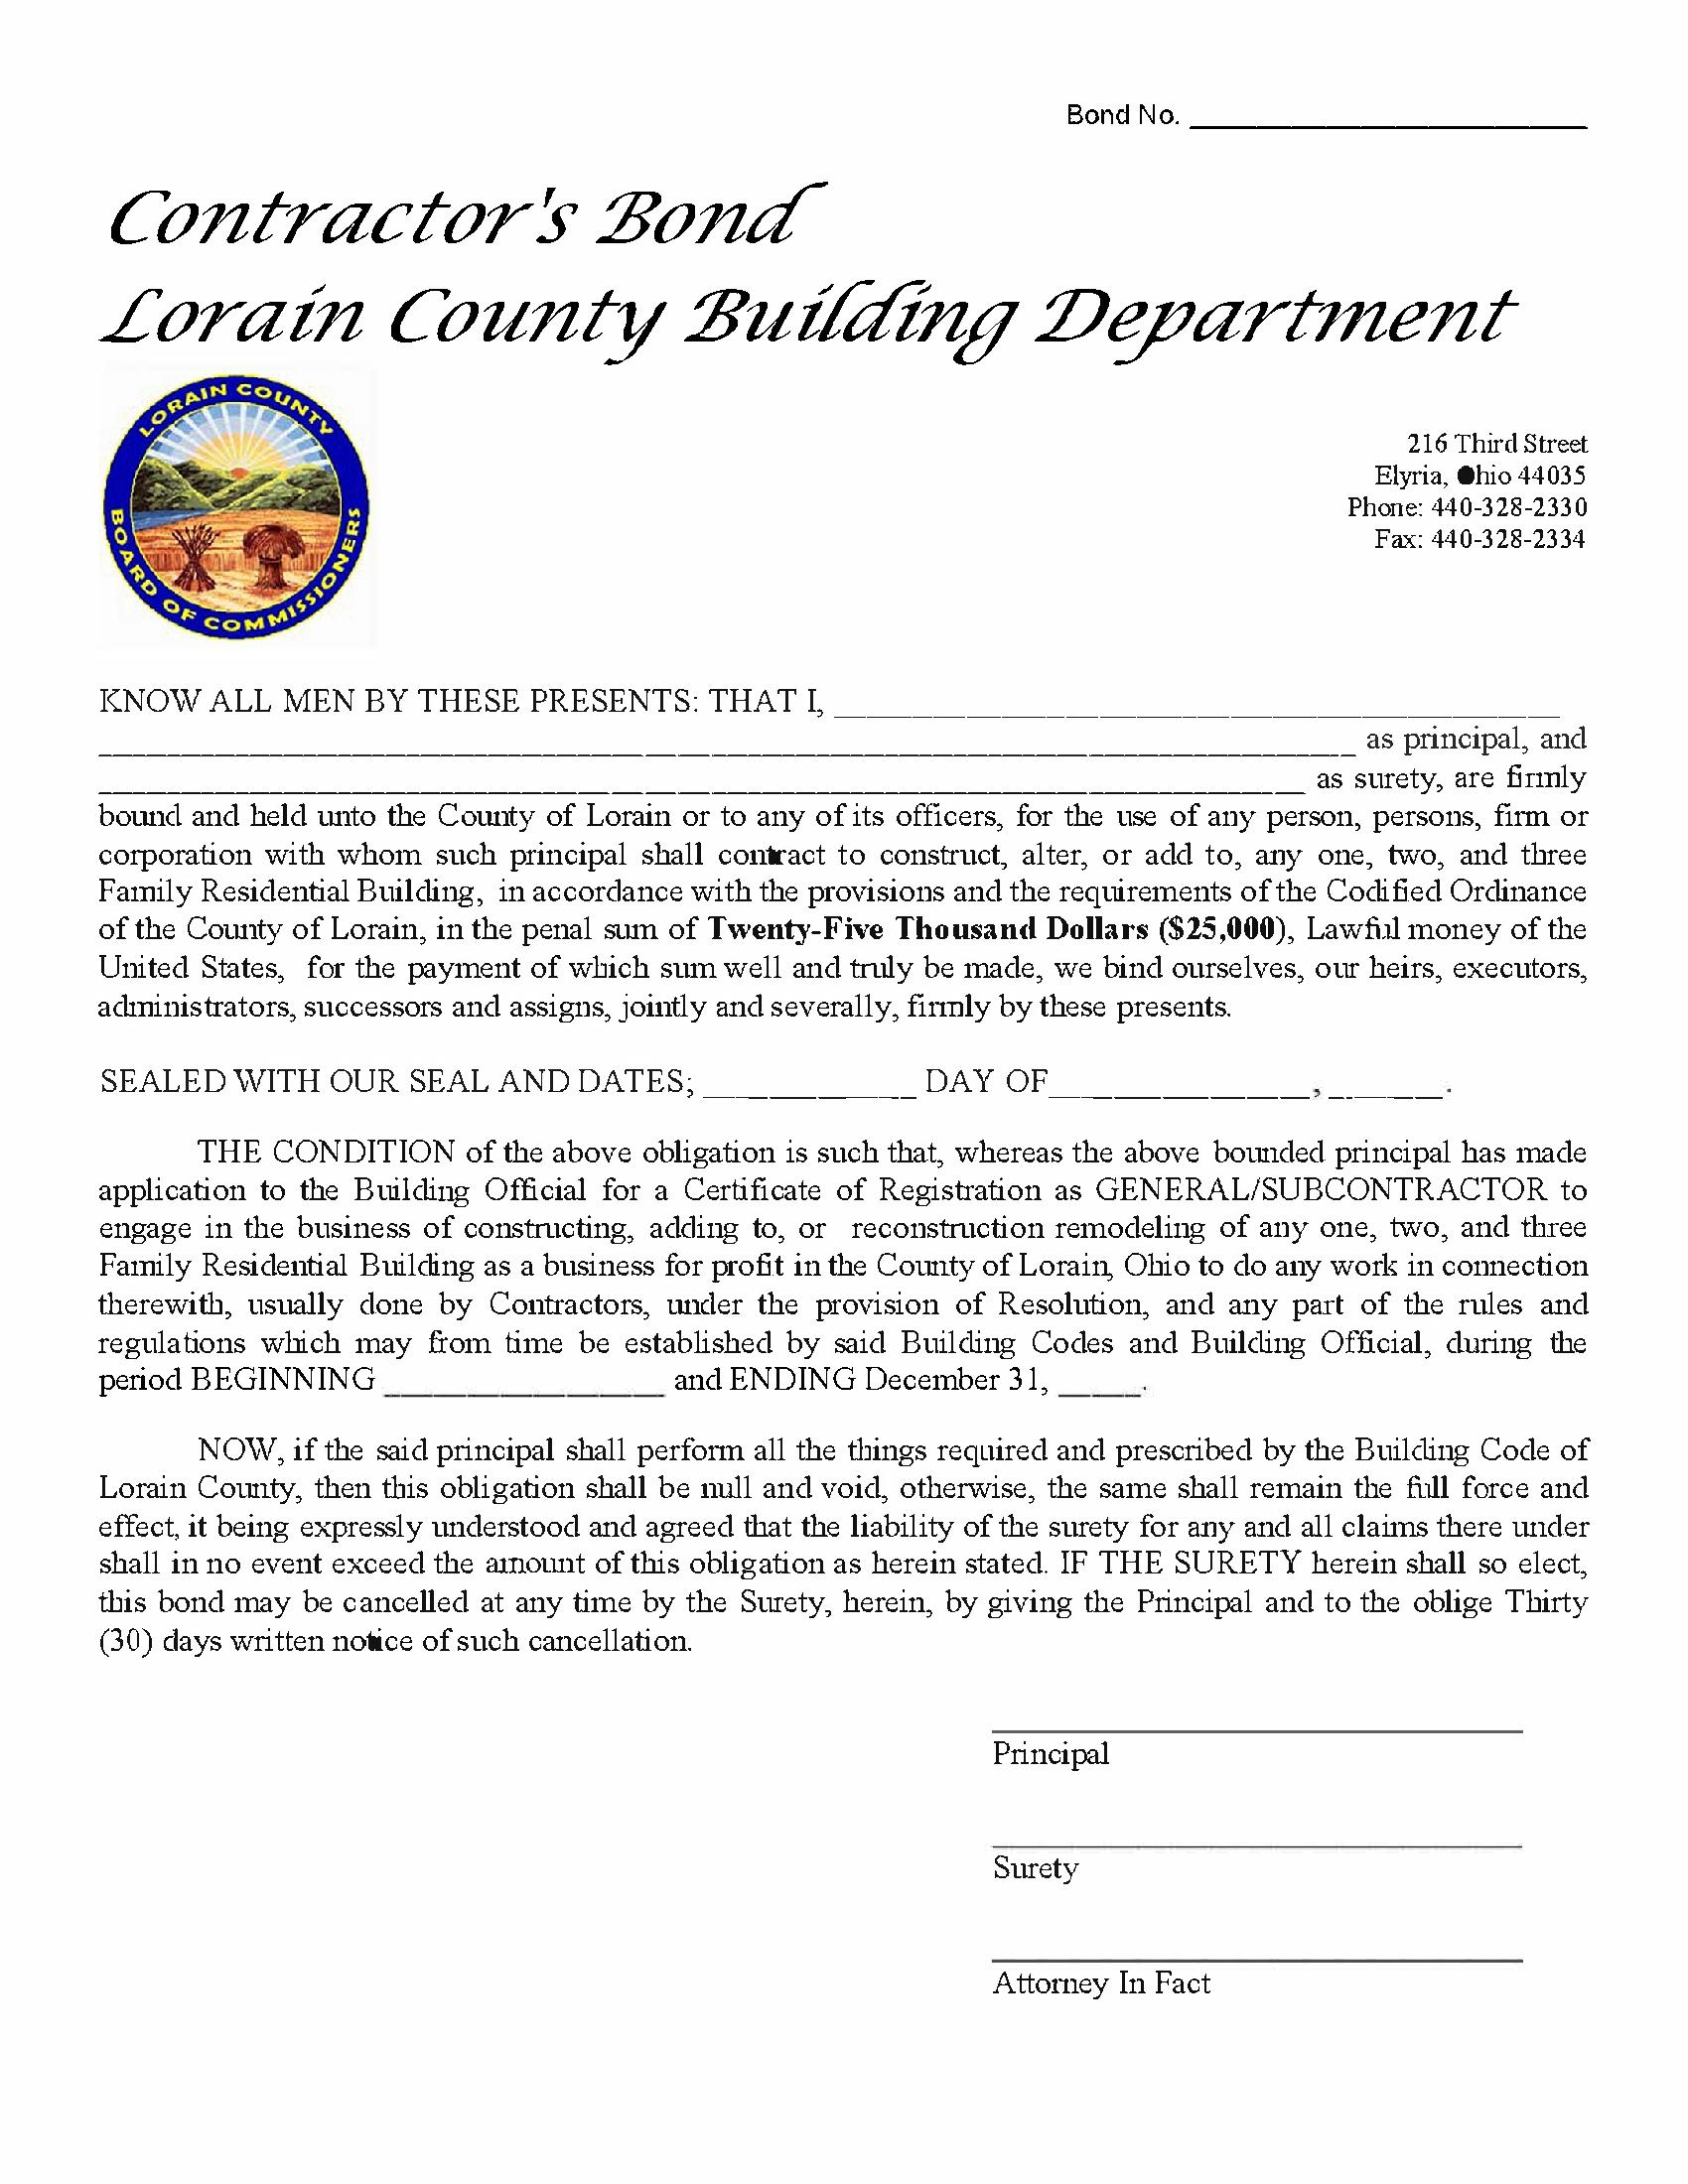 County of Lorain General / Subcontractor Registration sample image